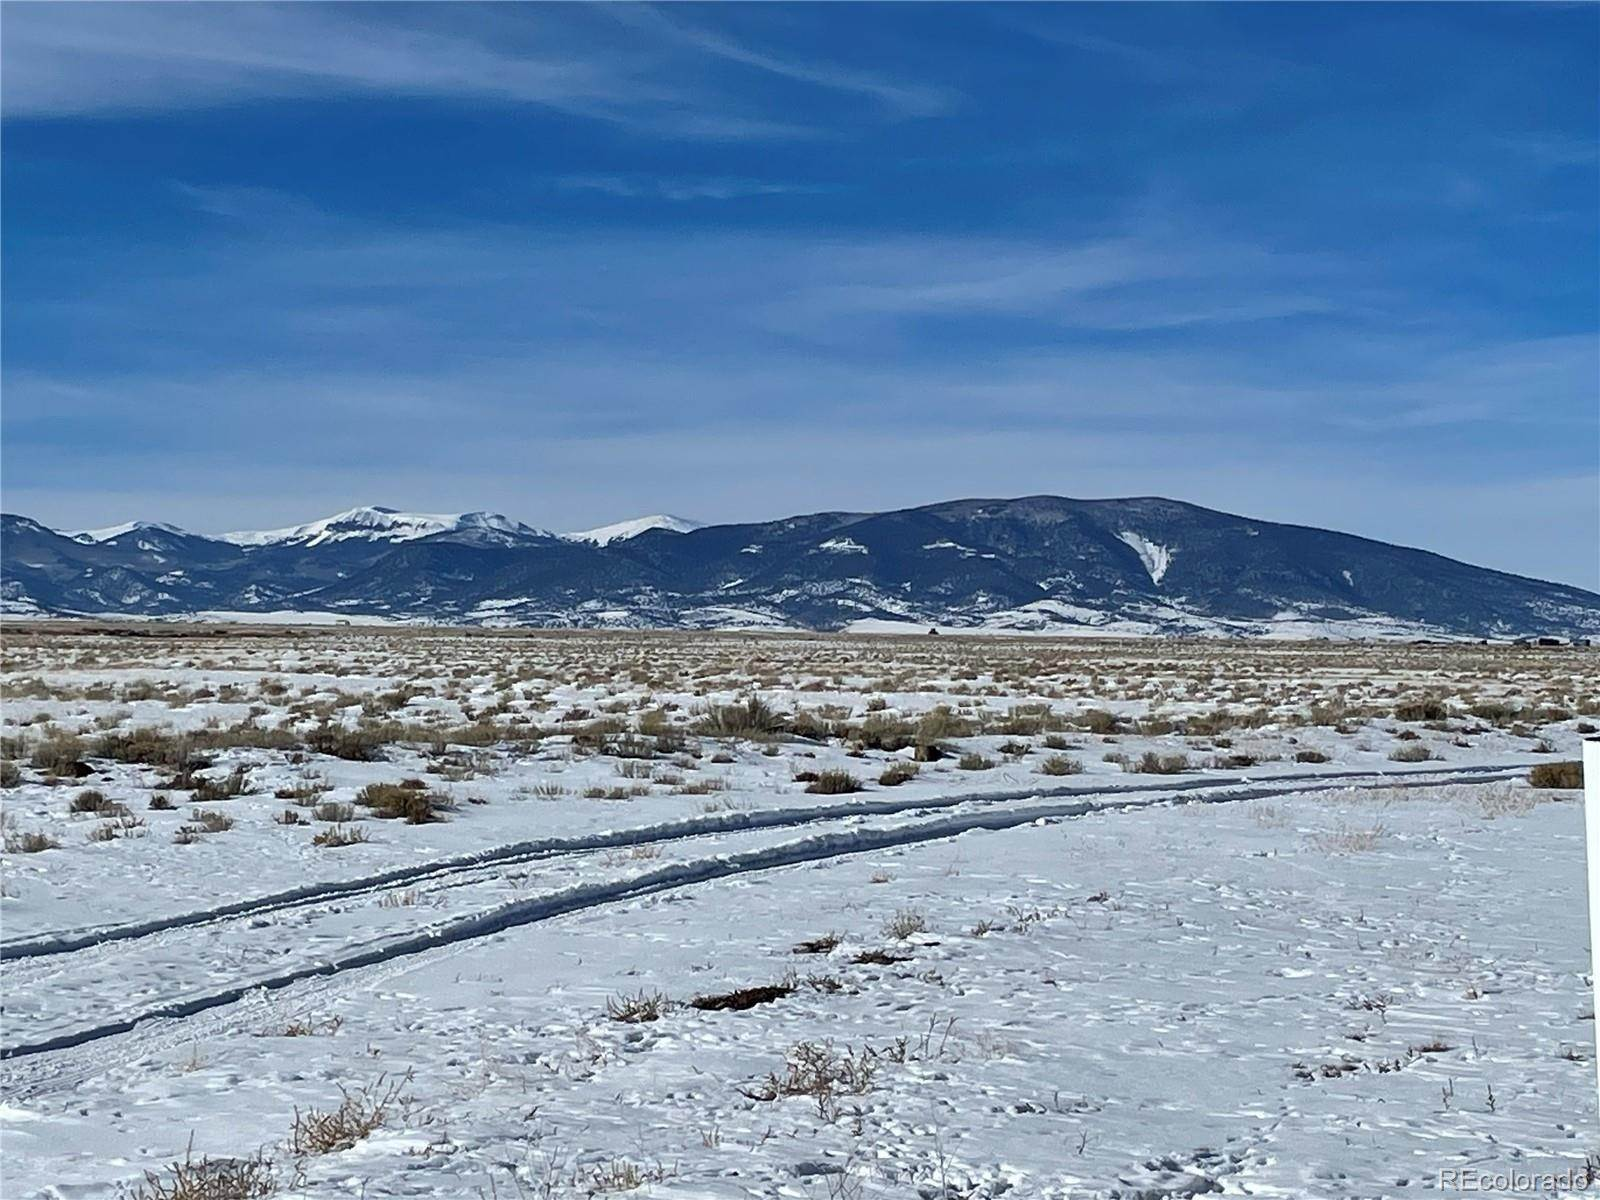 Land for Sale at County Rd. Z La Jara, Colorado 81140 United States